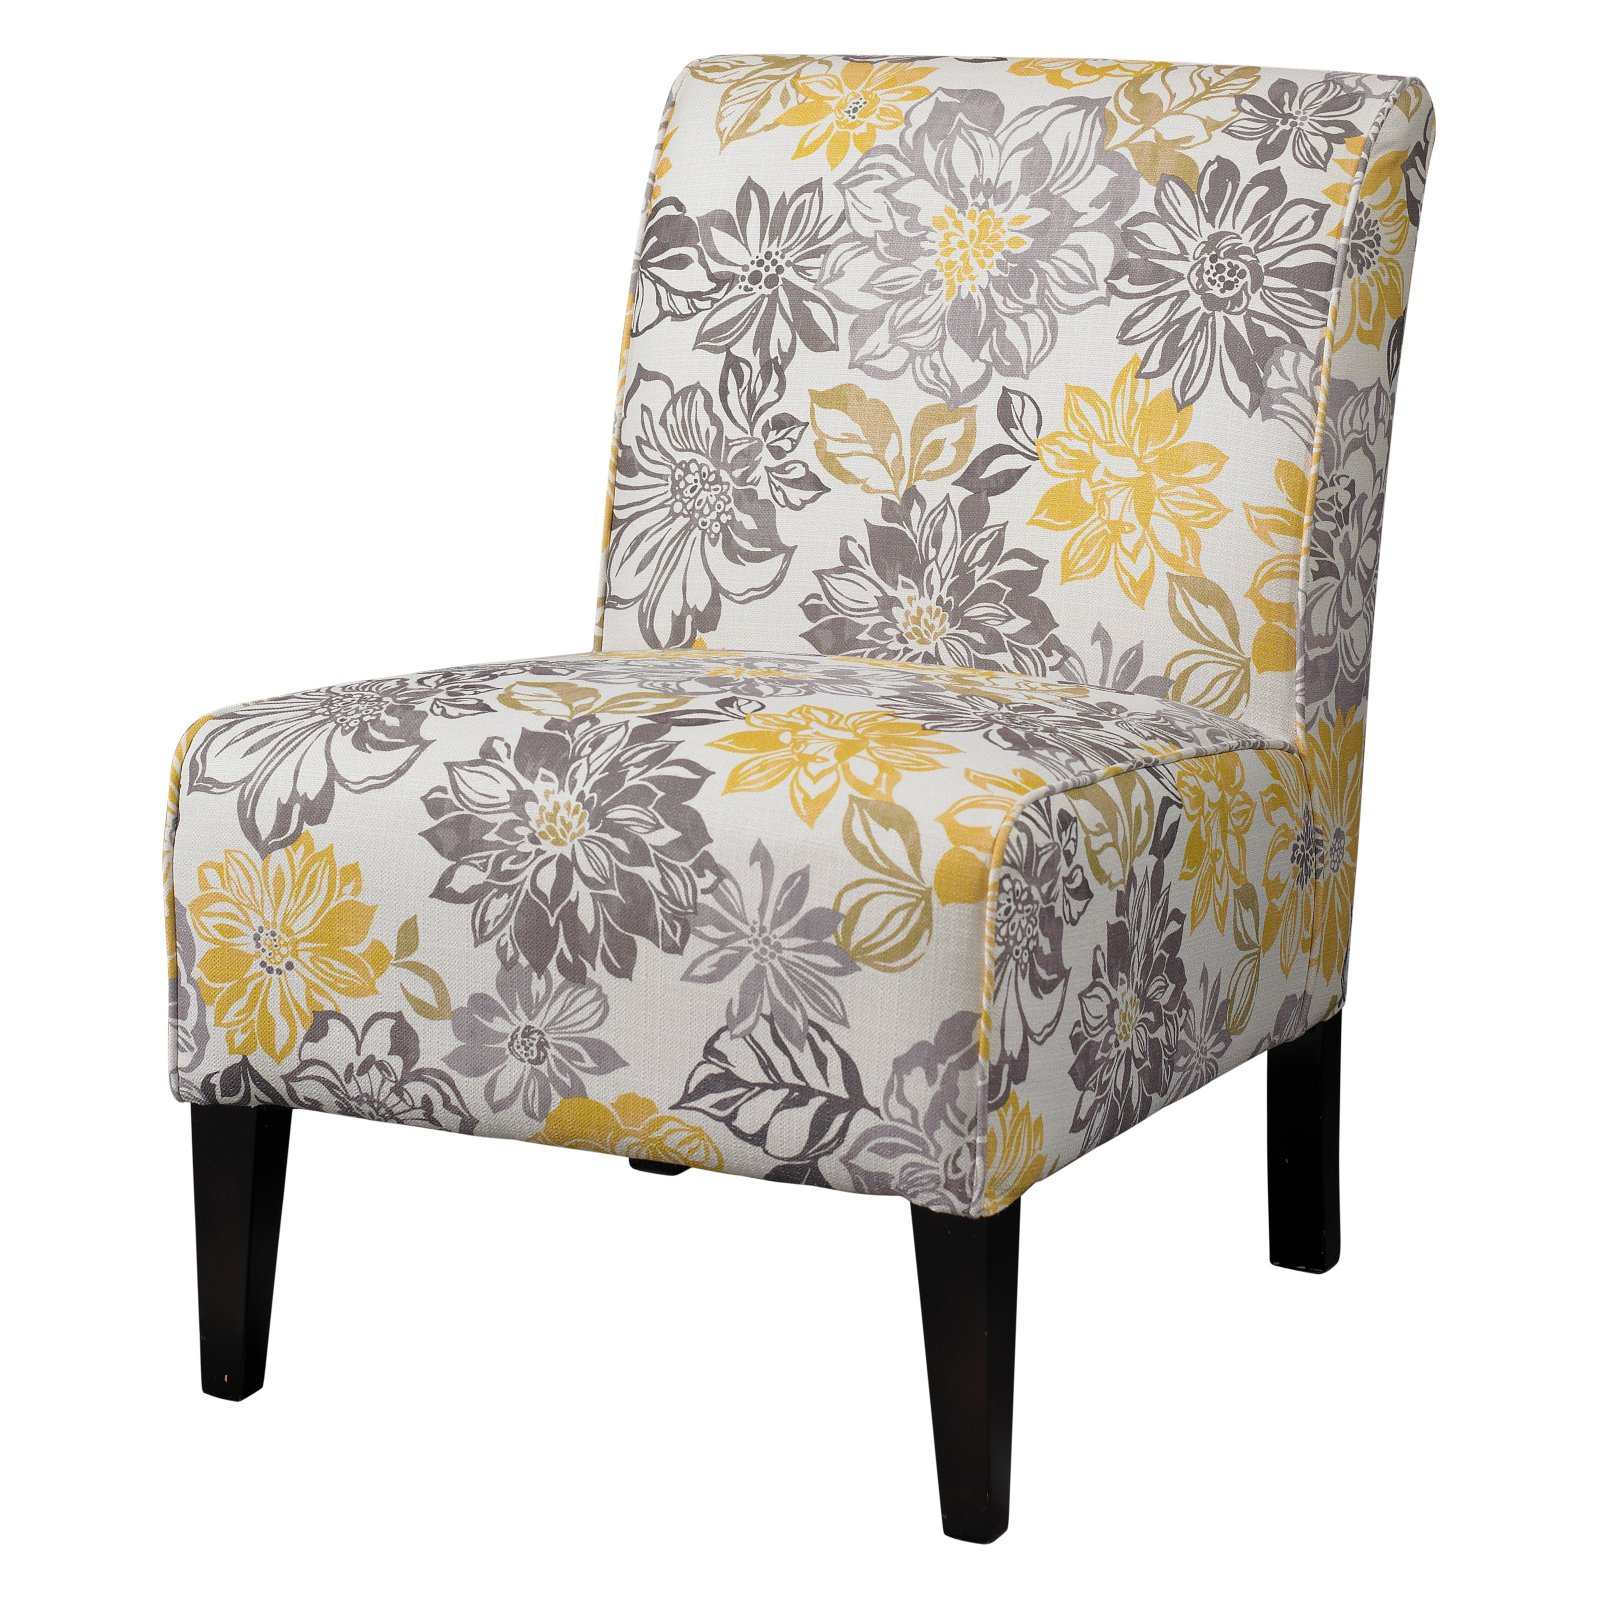 Linon Lily Bridey Chair, Black Frame, 18 inch Seat Height